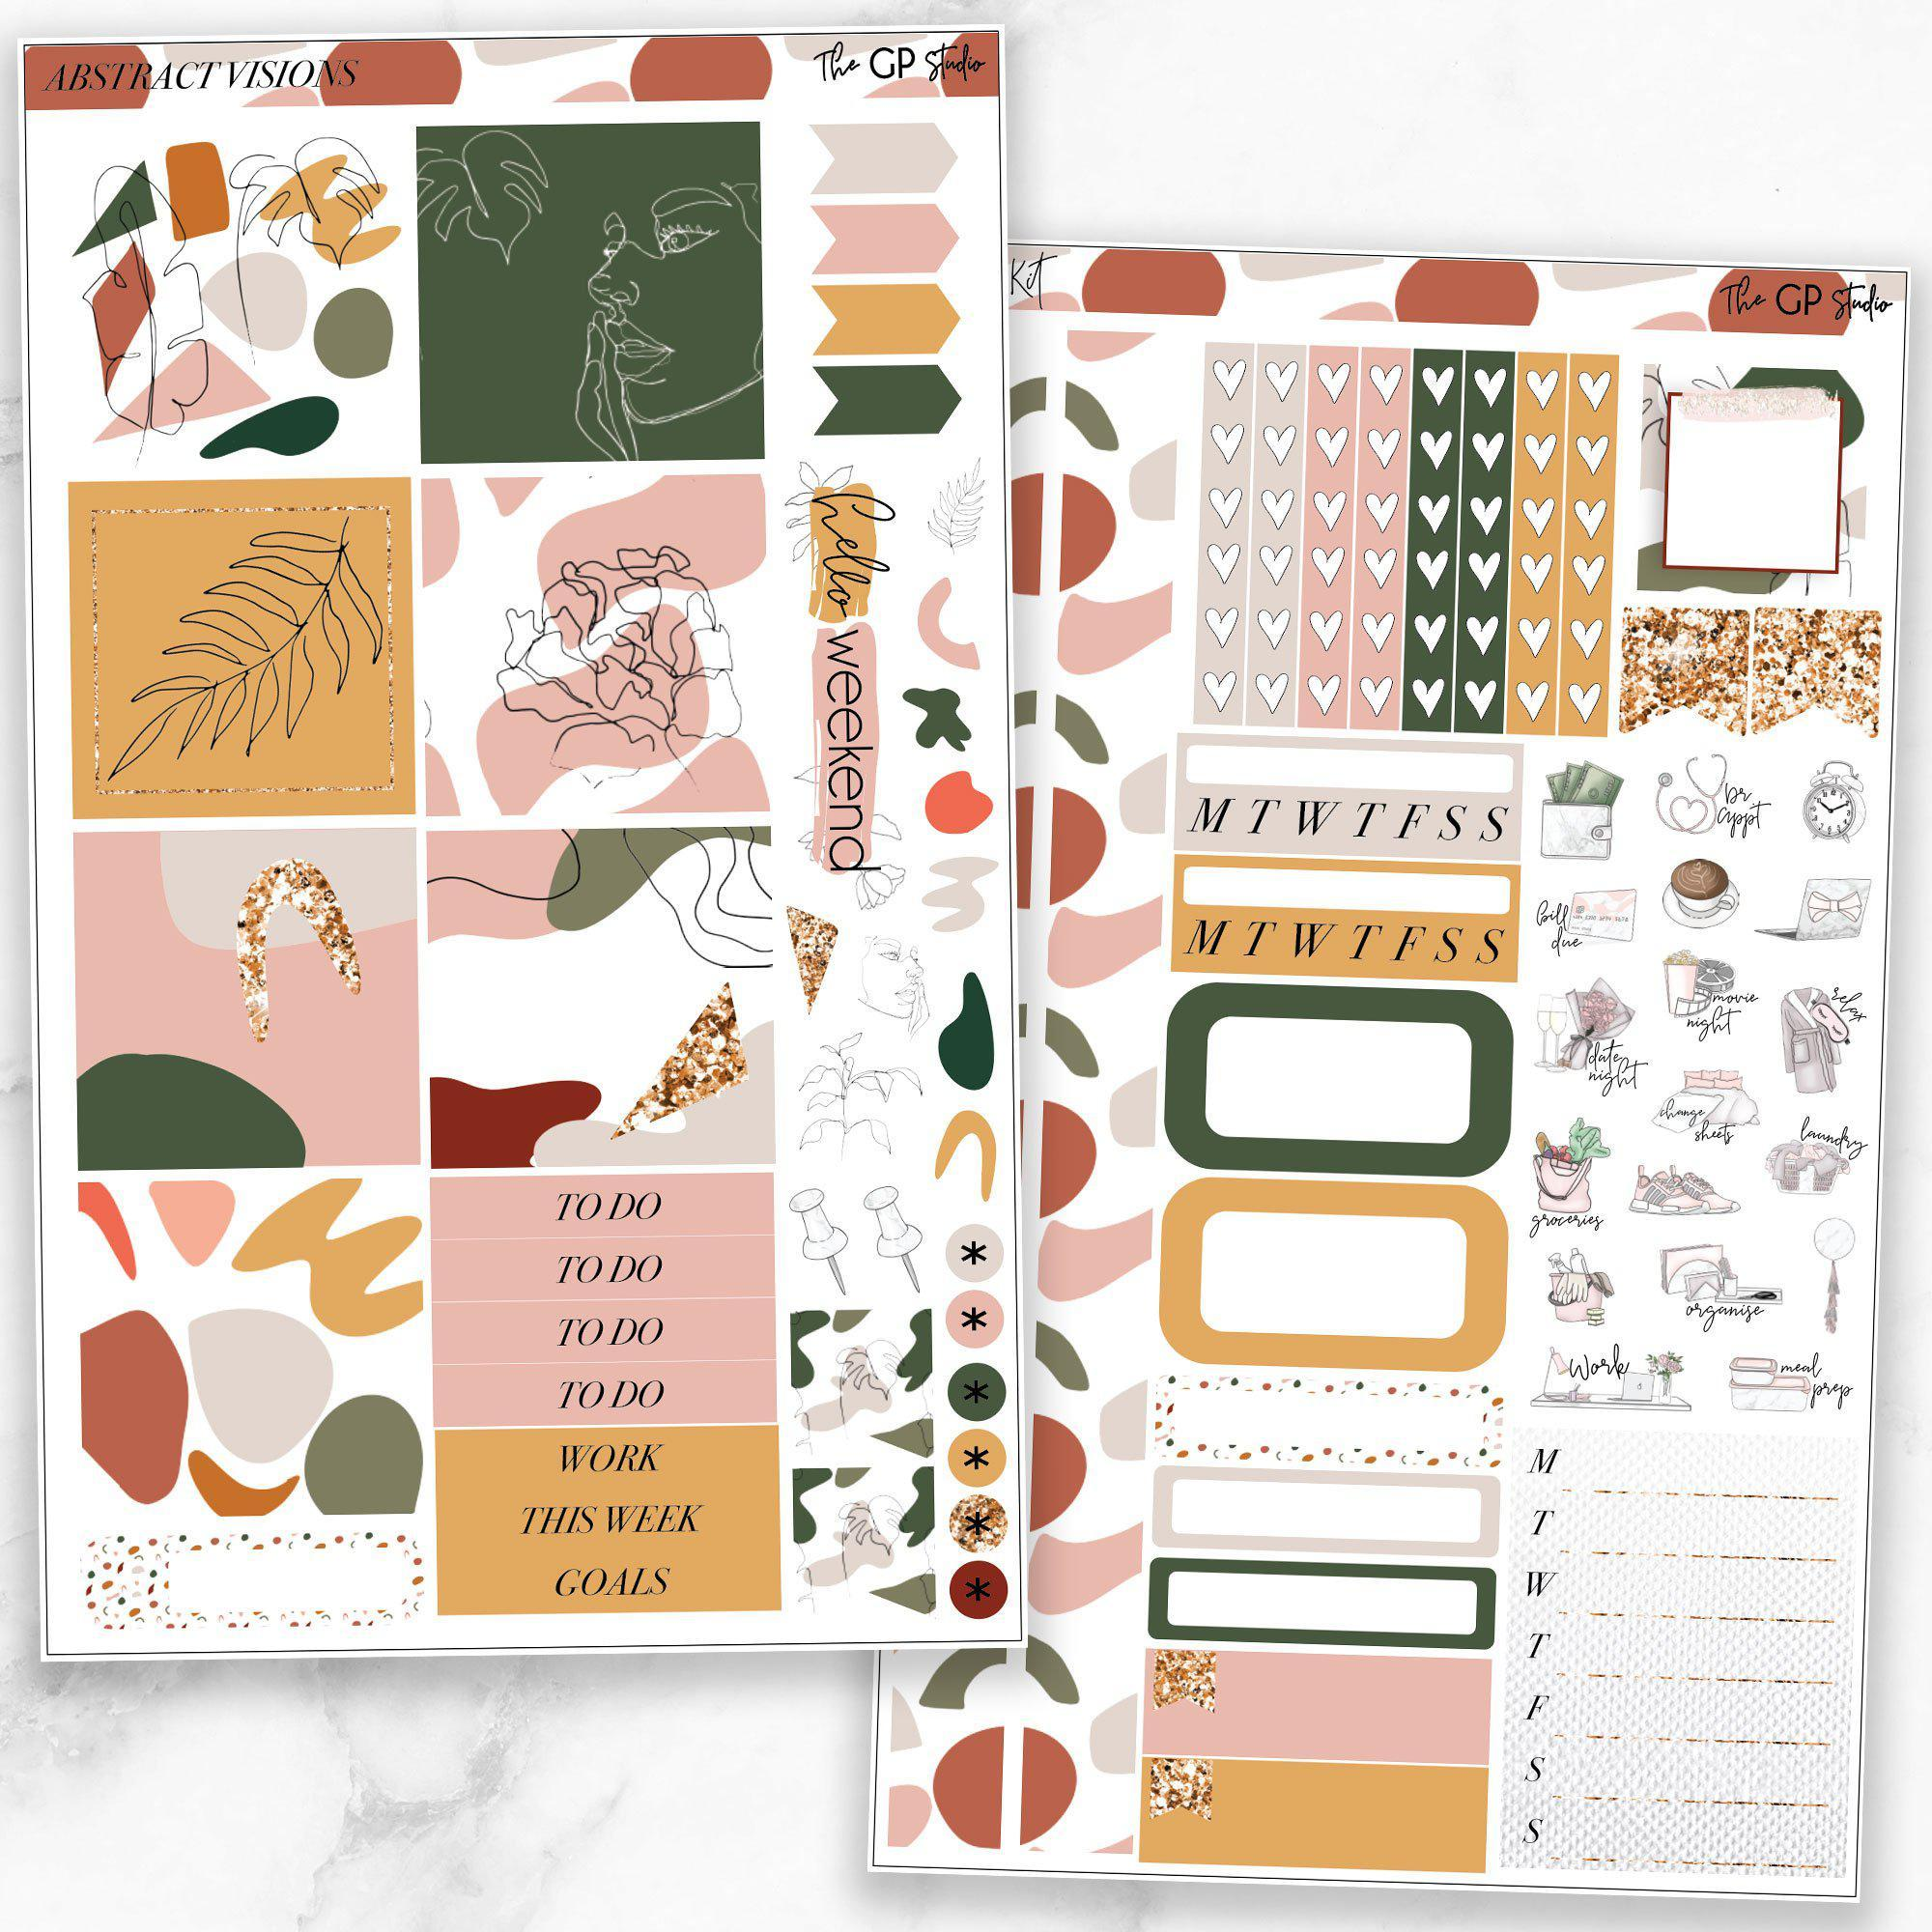 ABSTRACT VISIONS Mini Size Planner Sticker Kit-The GP Studio